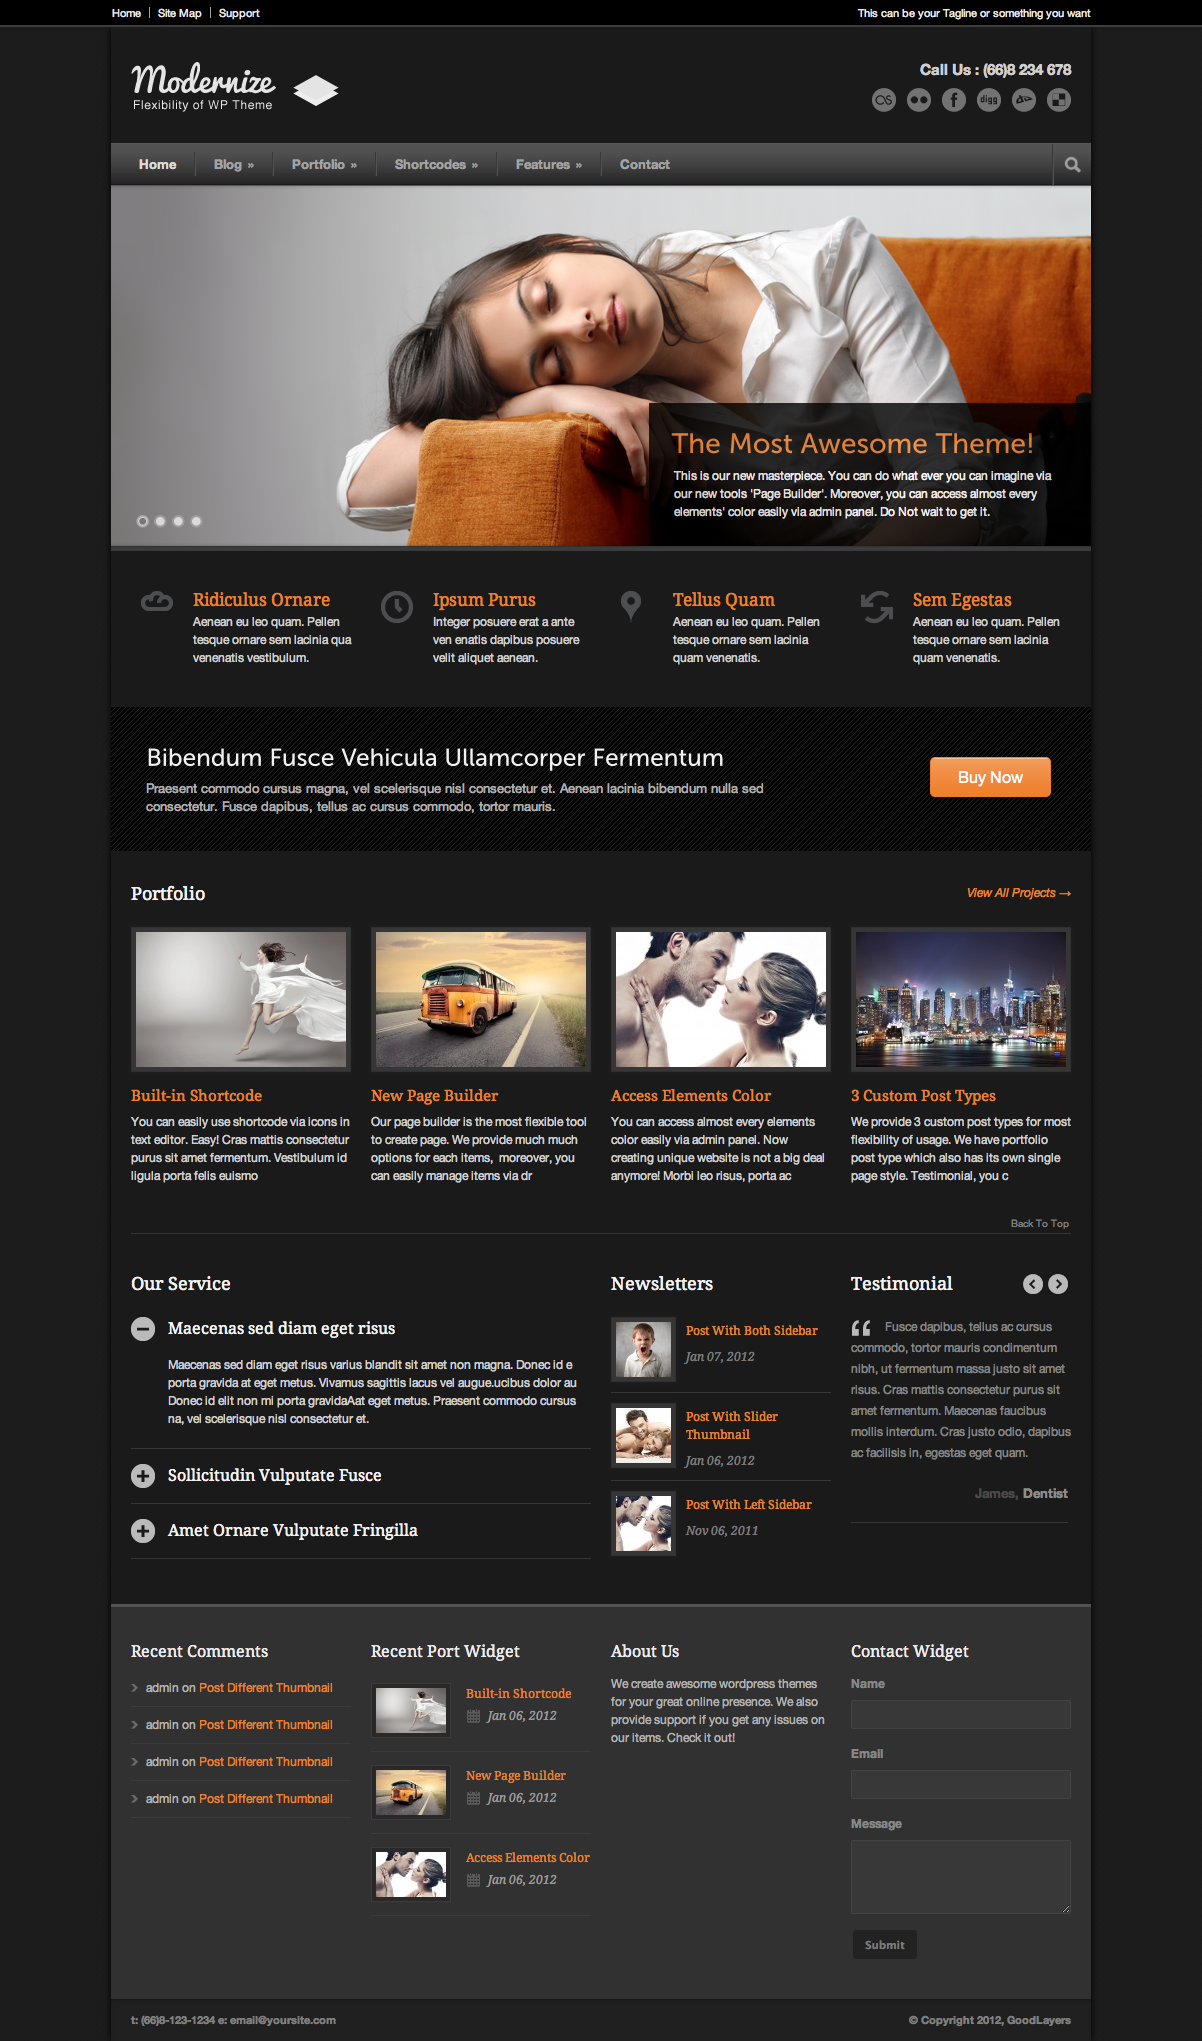 Modernize - Flexibility of WordPress - index page with color changed